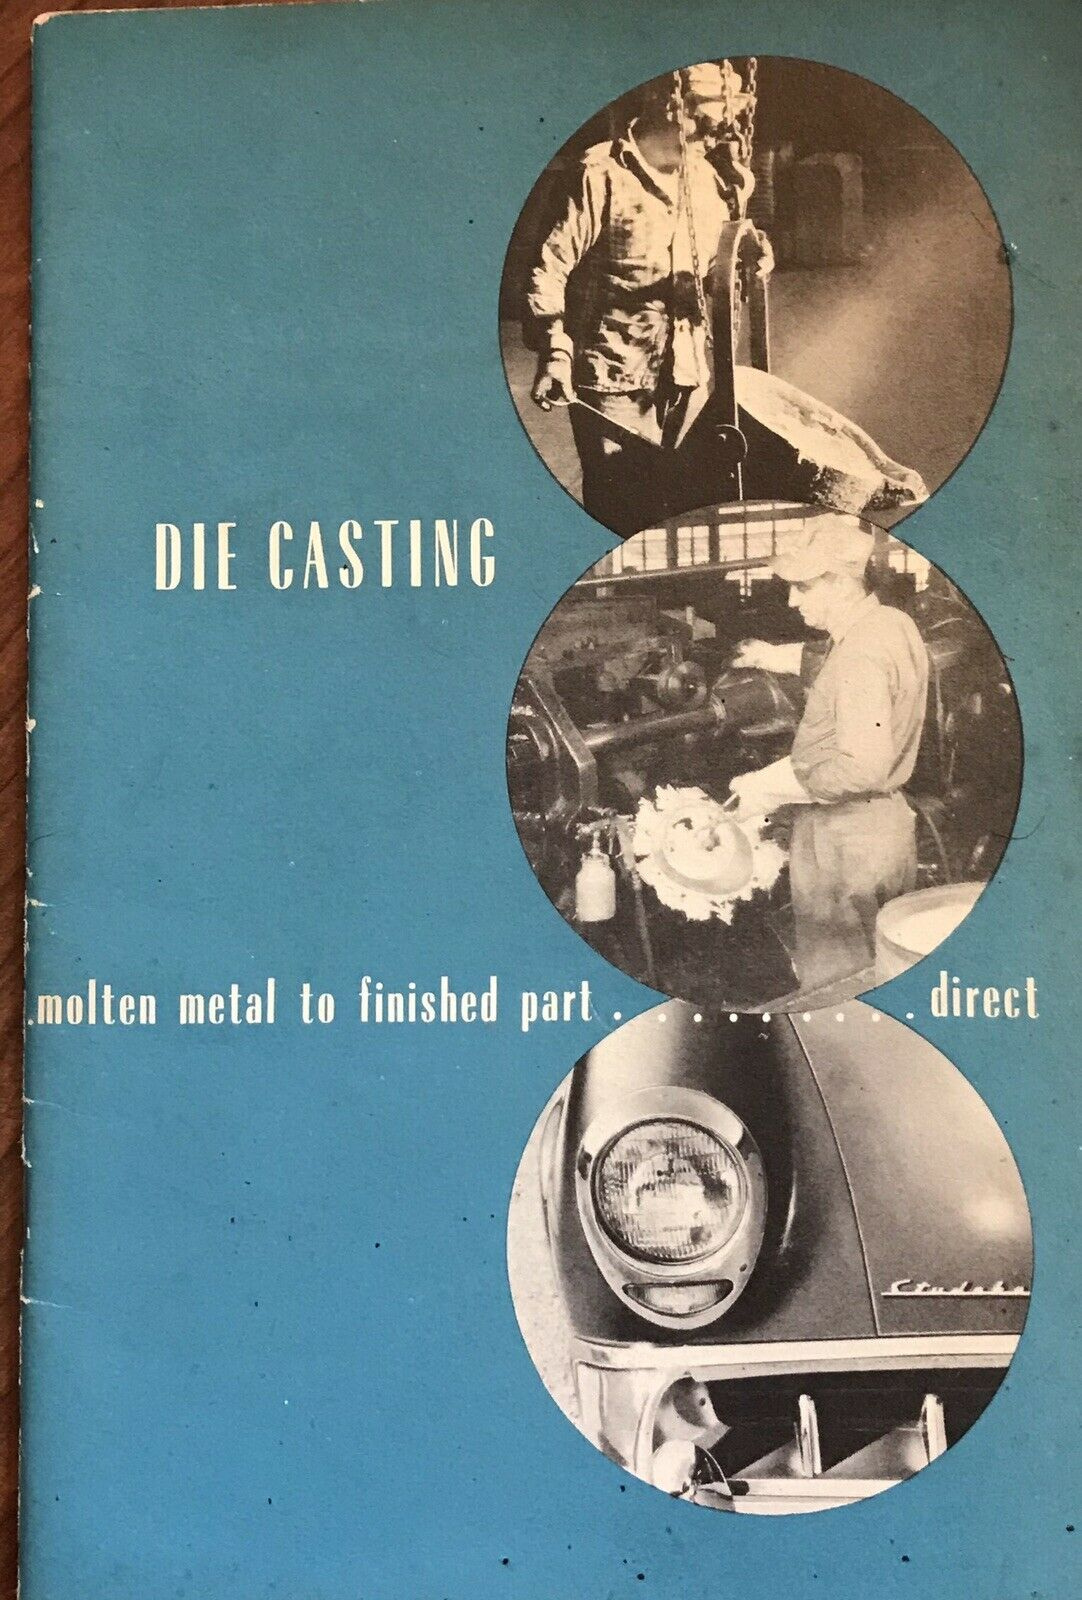 VINTAGE 1950 DIE CASTING MOLTEN ALLOY TECHNIQUES TECHNOLOGY METAL DIECAST |